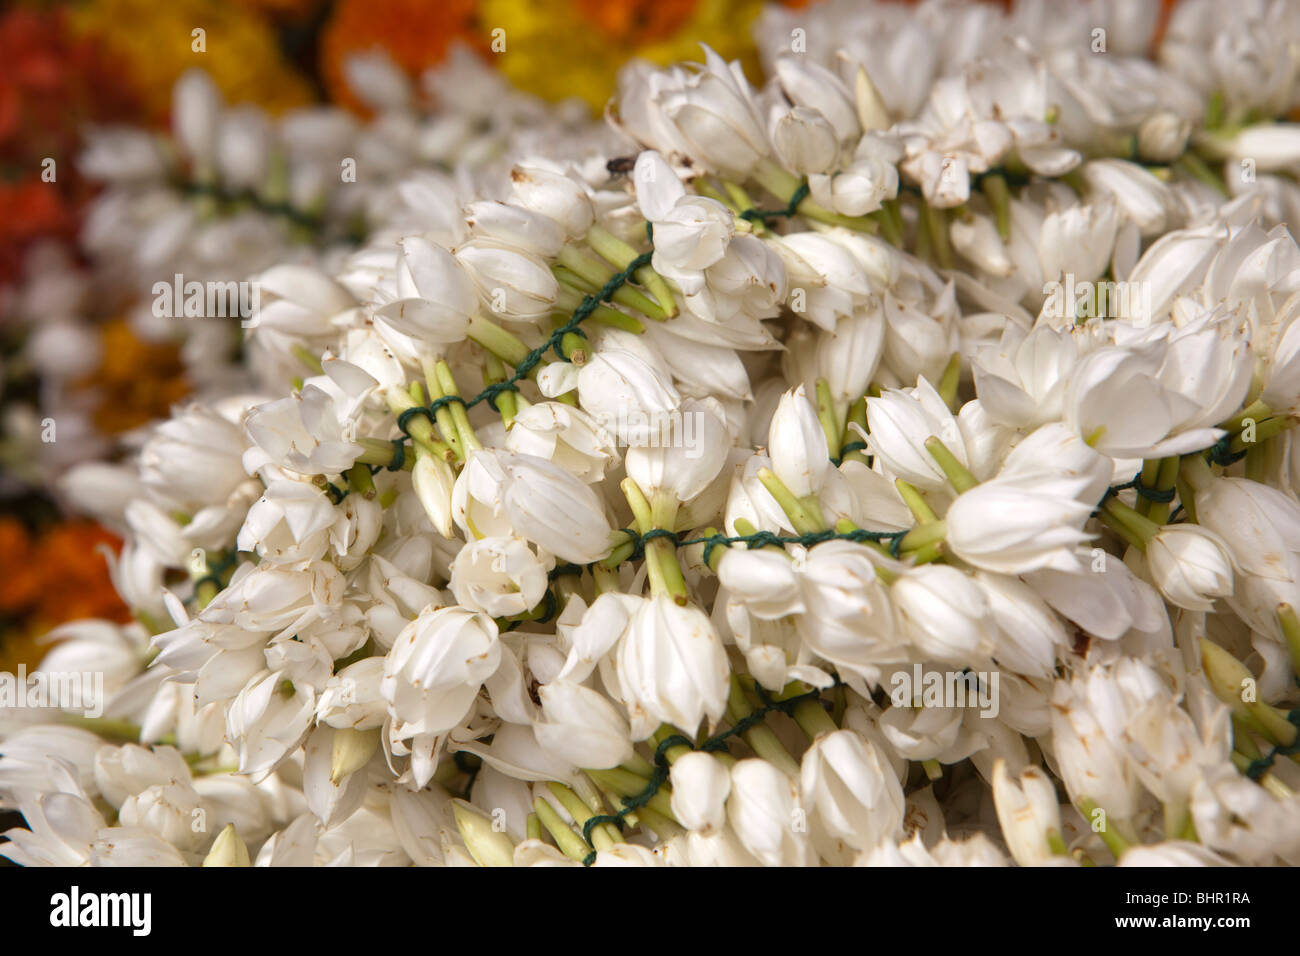 Jasmine flowers stock photos jasmine flowers stock images alamy india kerala munnar jasmine flowers tied together into fragrant floral garland stock izmirmasajfo Gallery